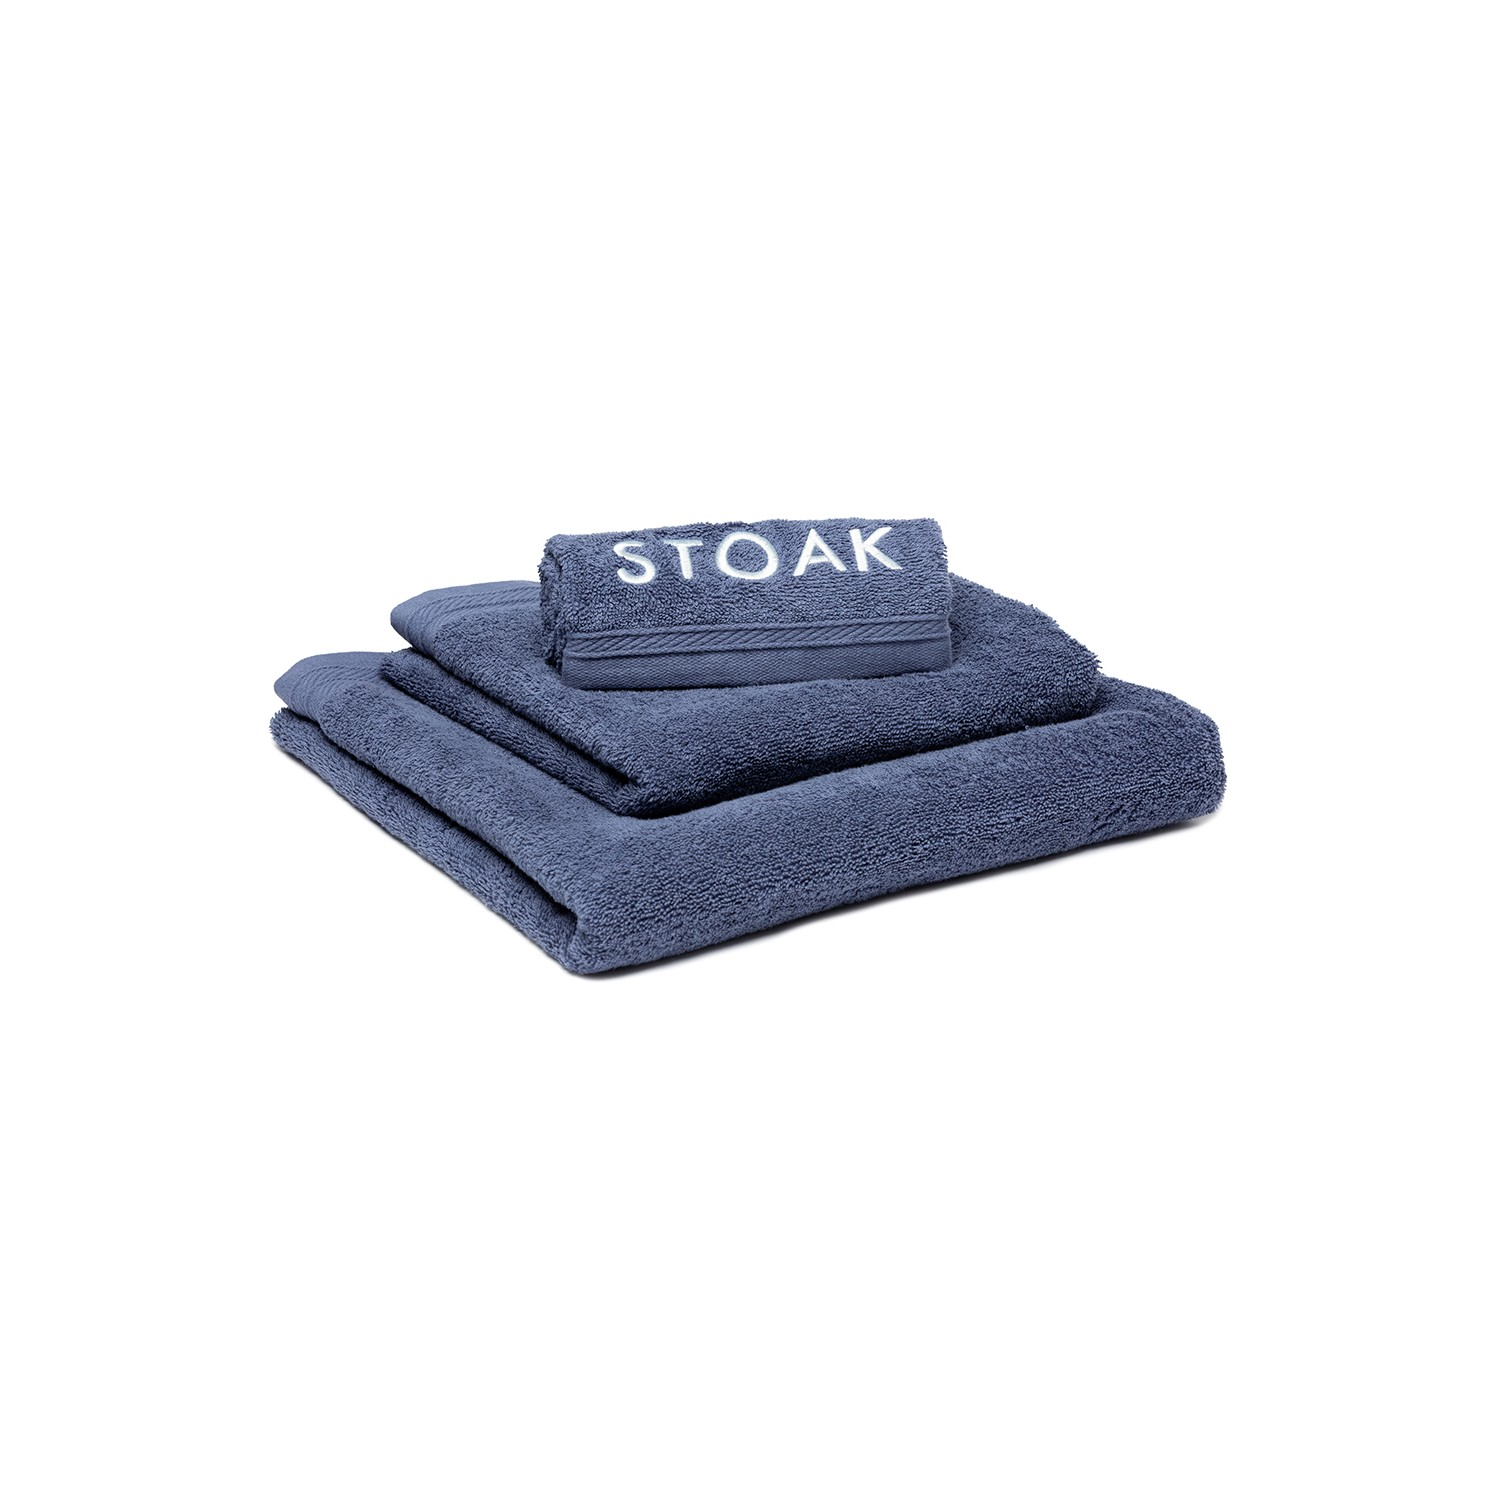 STOAK BERGSEE TOWEL (Organic Cotton)